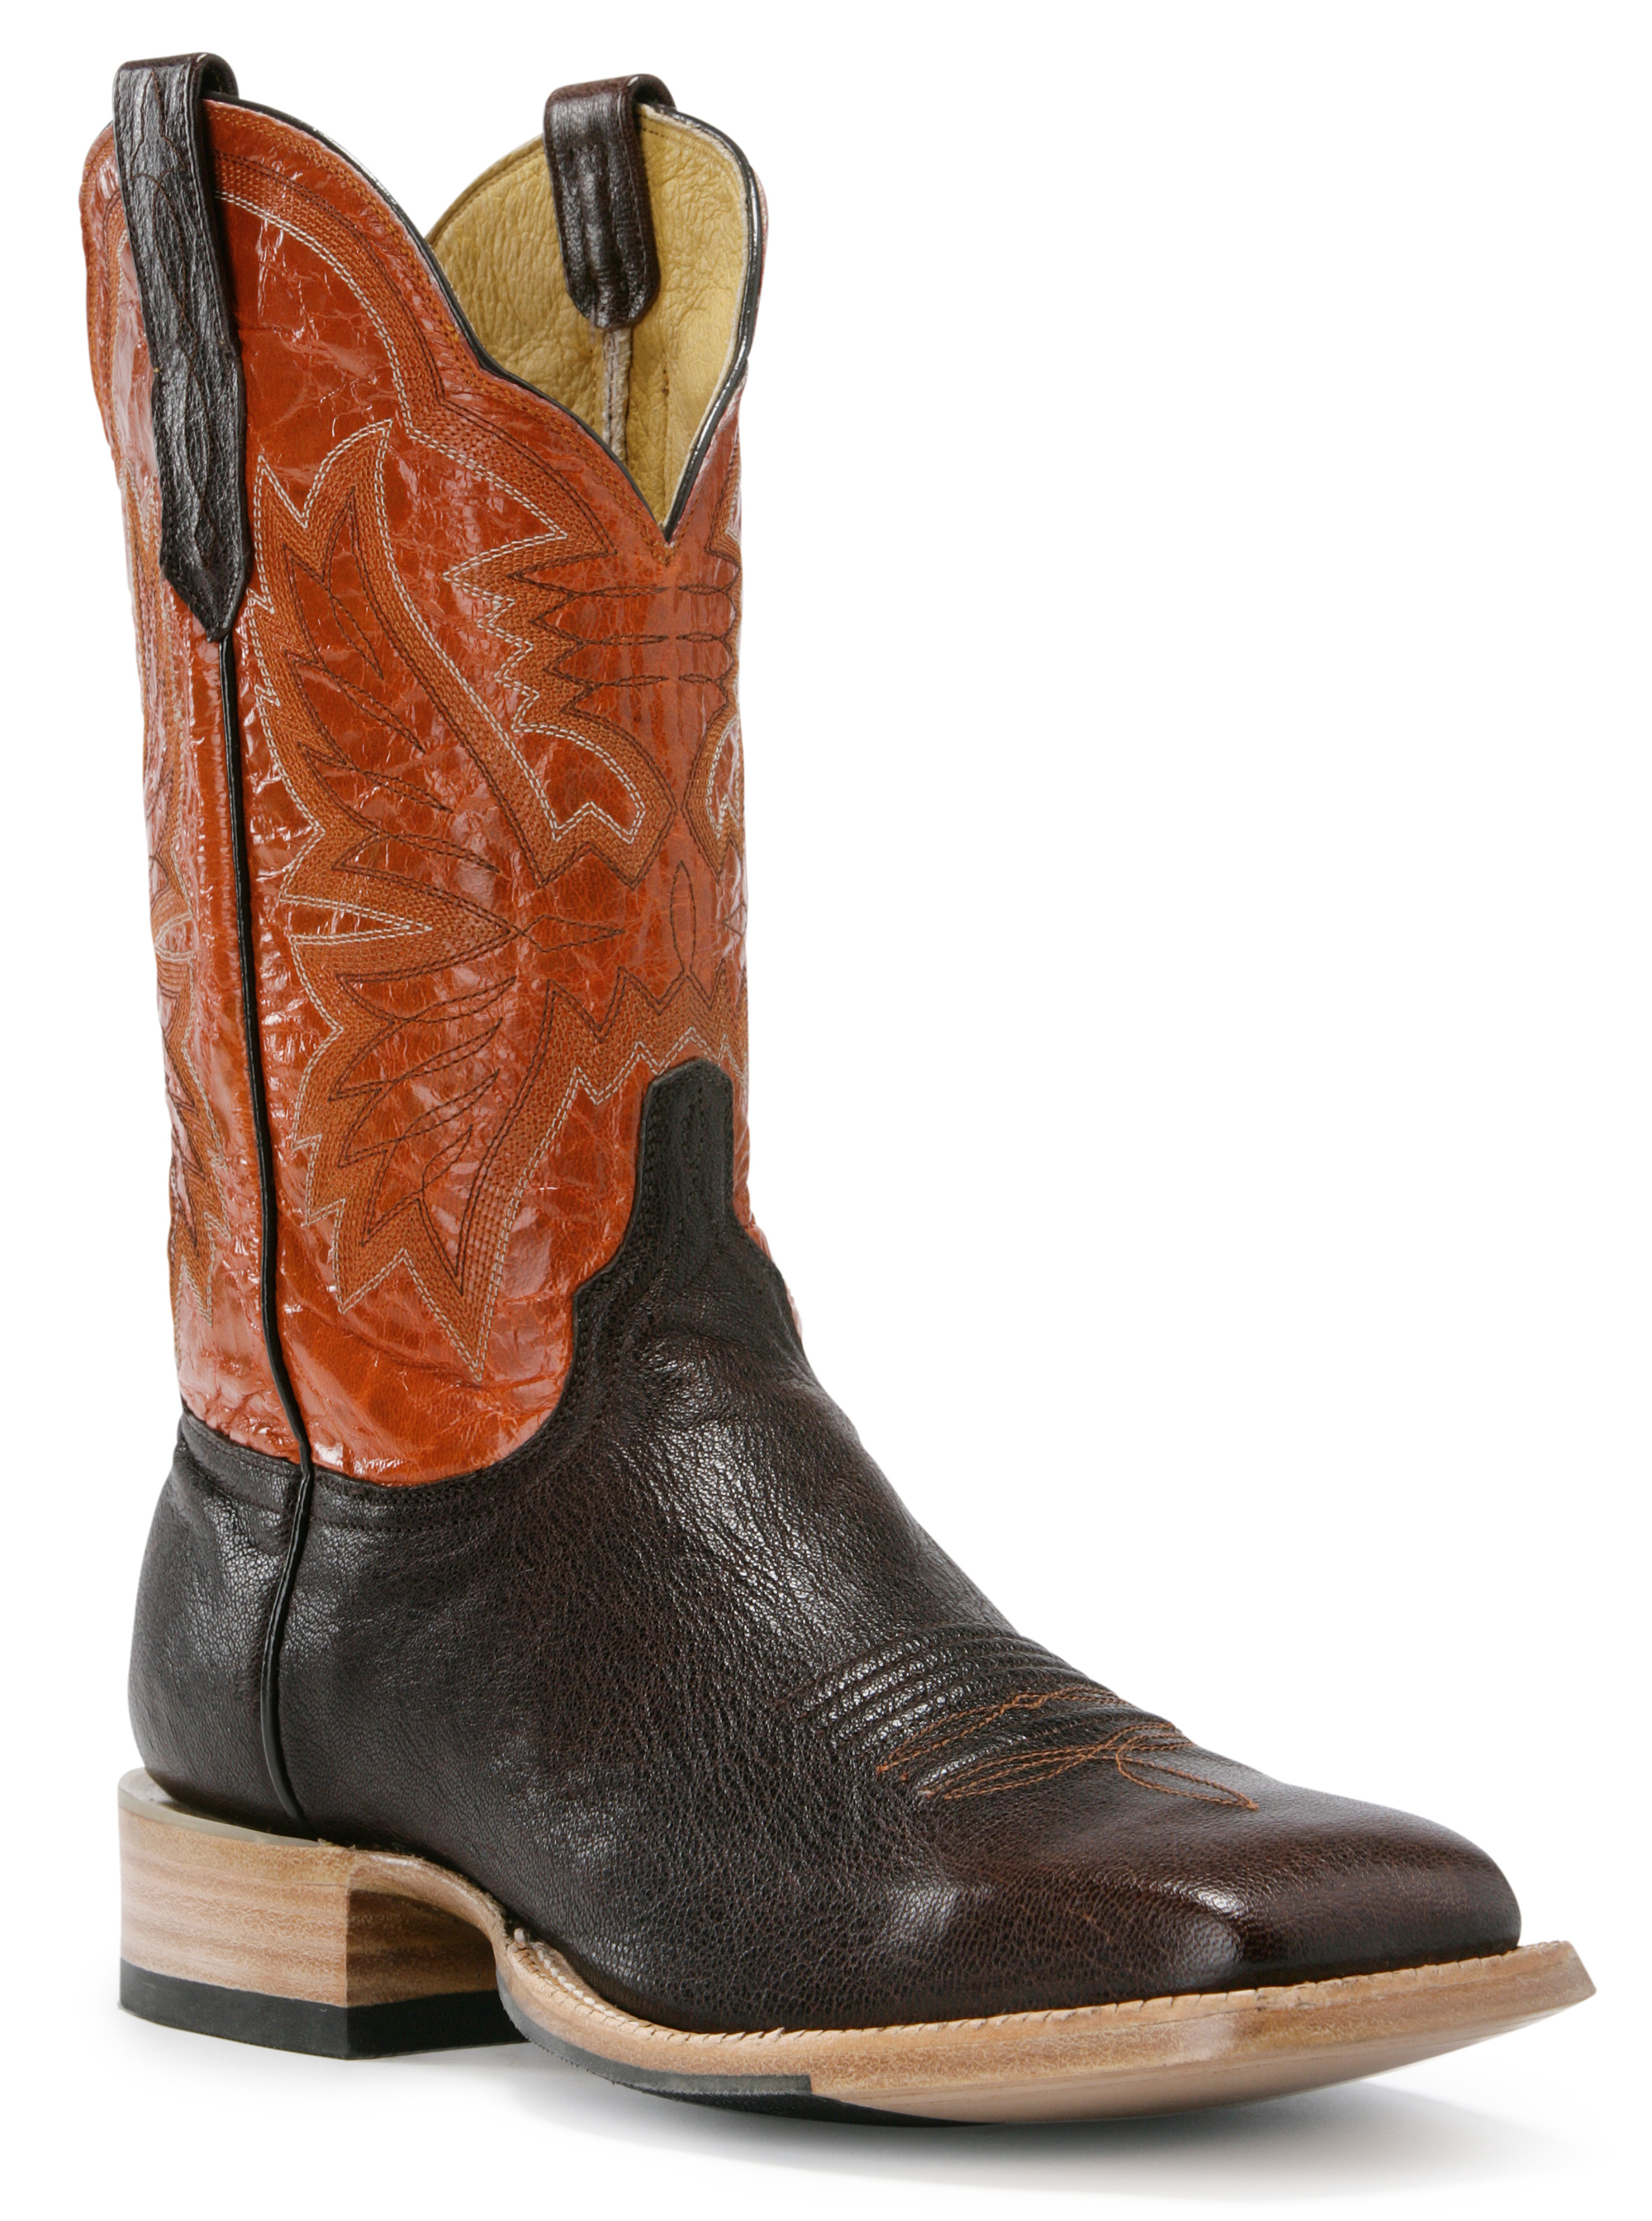 Cinch Western Boots Mens Cowboy Calfskin Leather Square Toe Brown CFM101 (2E) at Sears.com